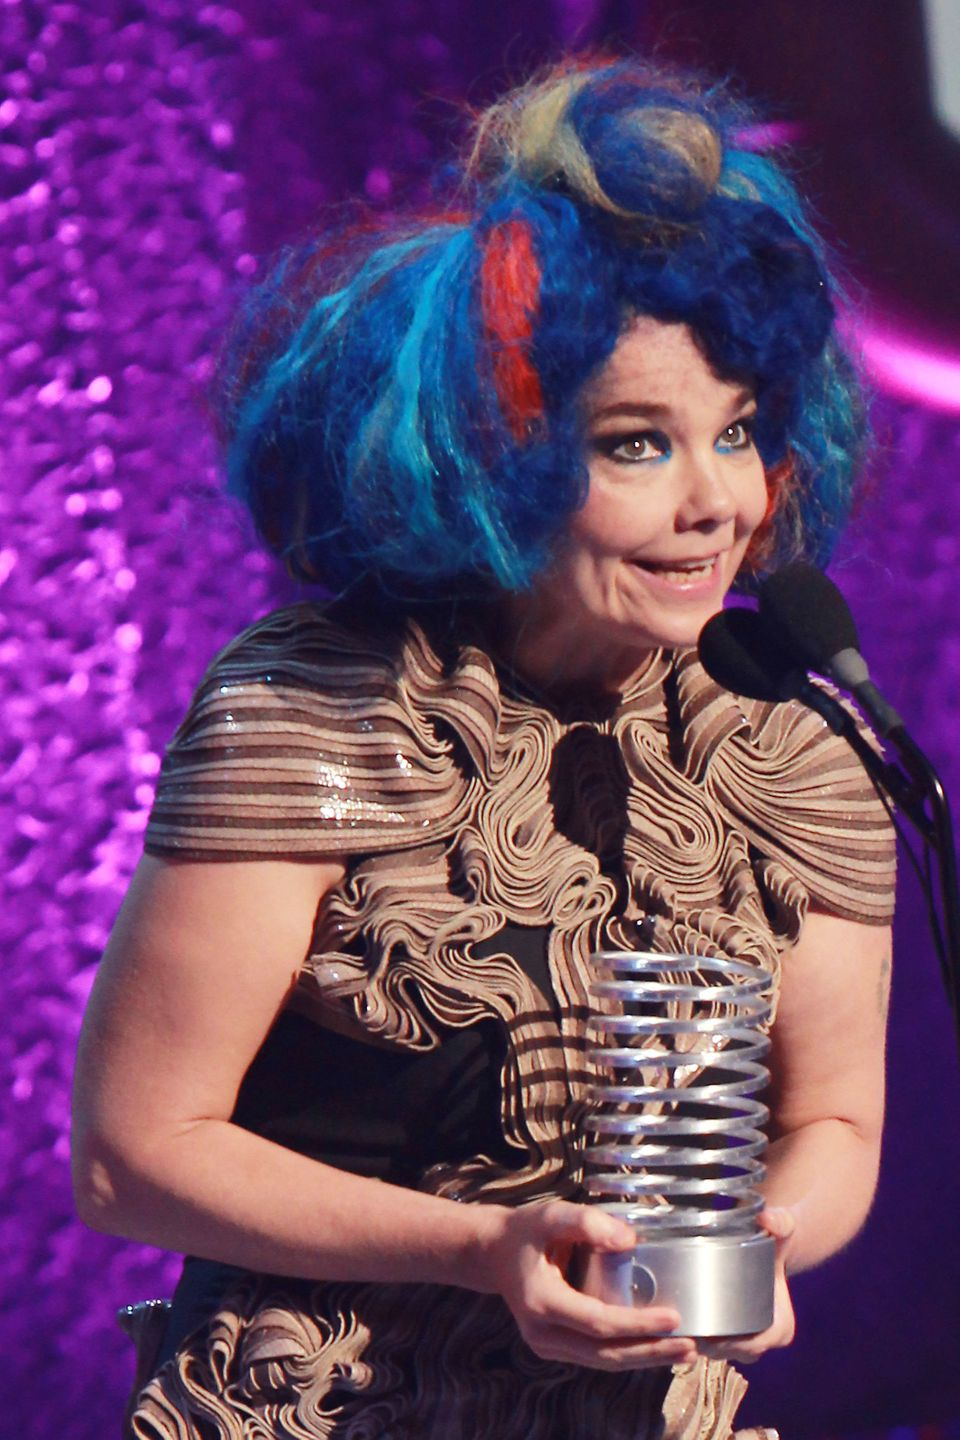 At 47, Björk continues to evolve. Born in Iceland, she formed a punk band at age 14 and has been remaking herself -- again an